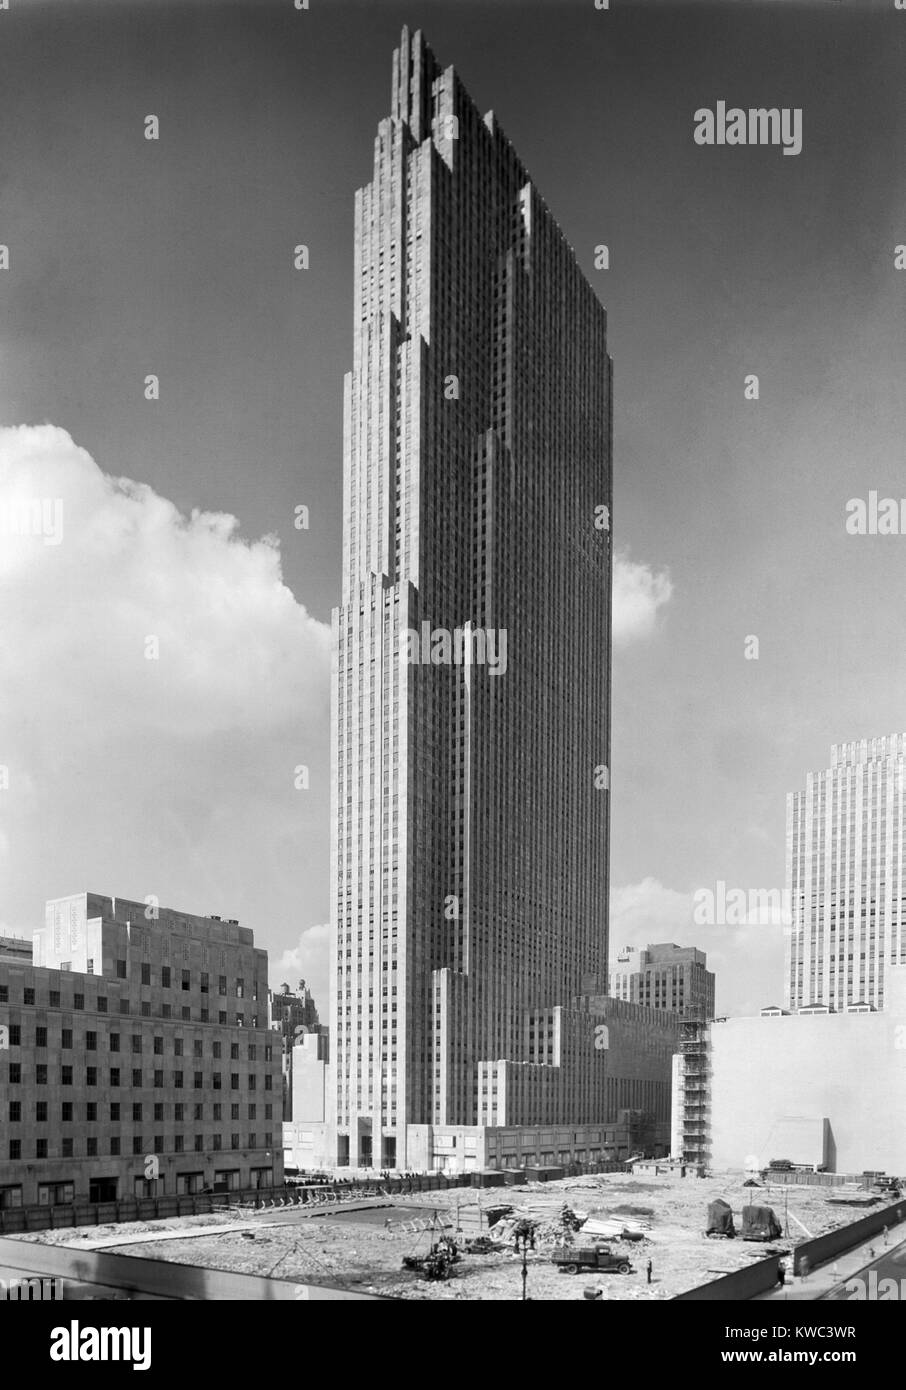 The new RCA Building in Rockefeller Center on Sept. 1, 1933. The adjacent lots await construction. It was the landmark - Stock Image